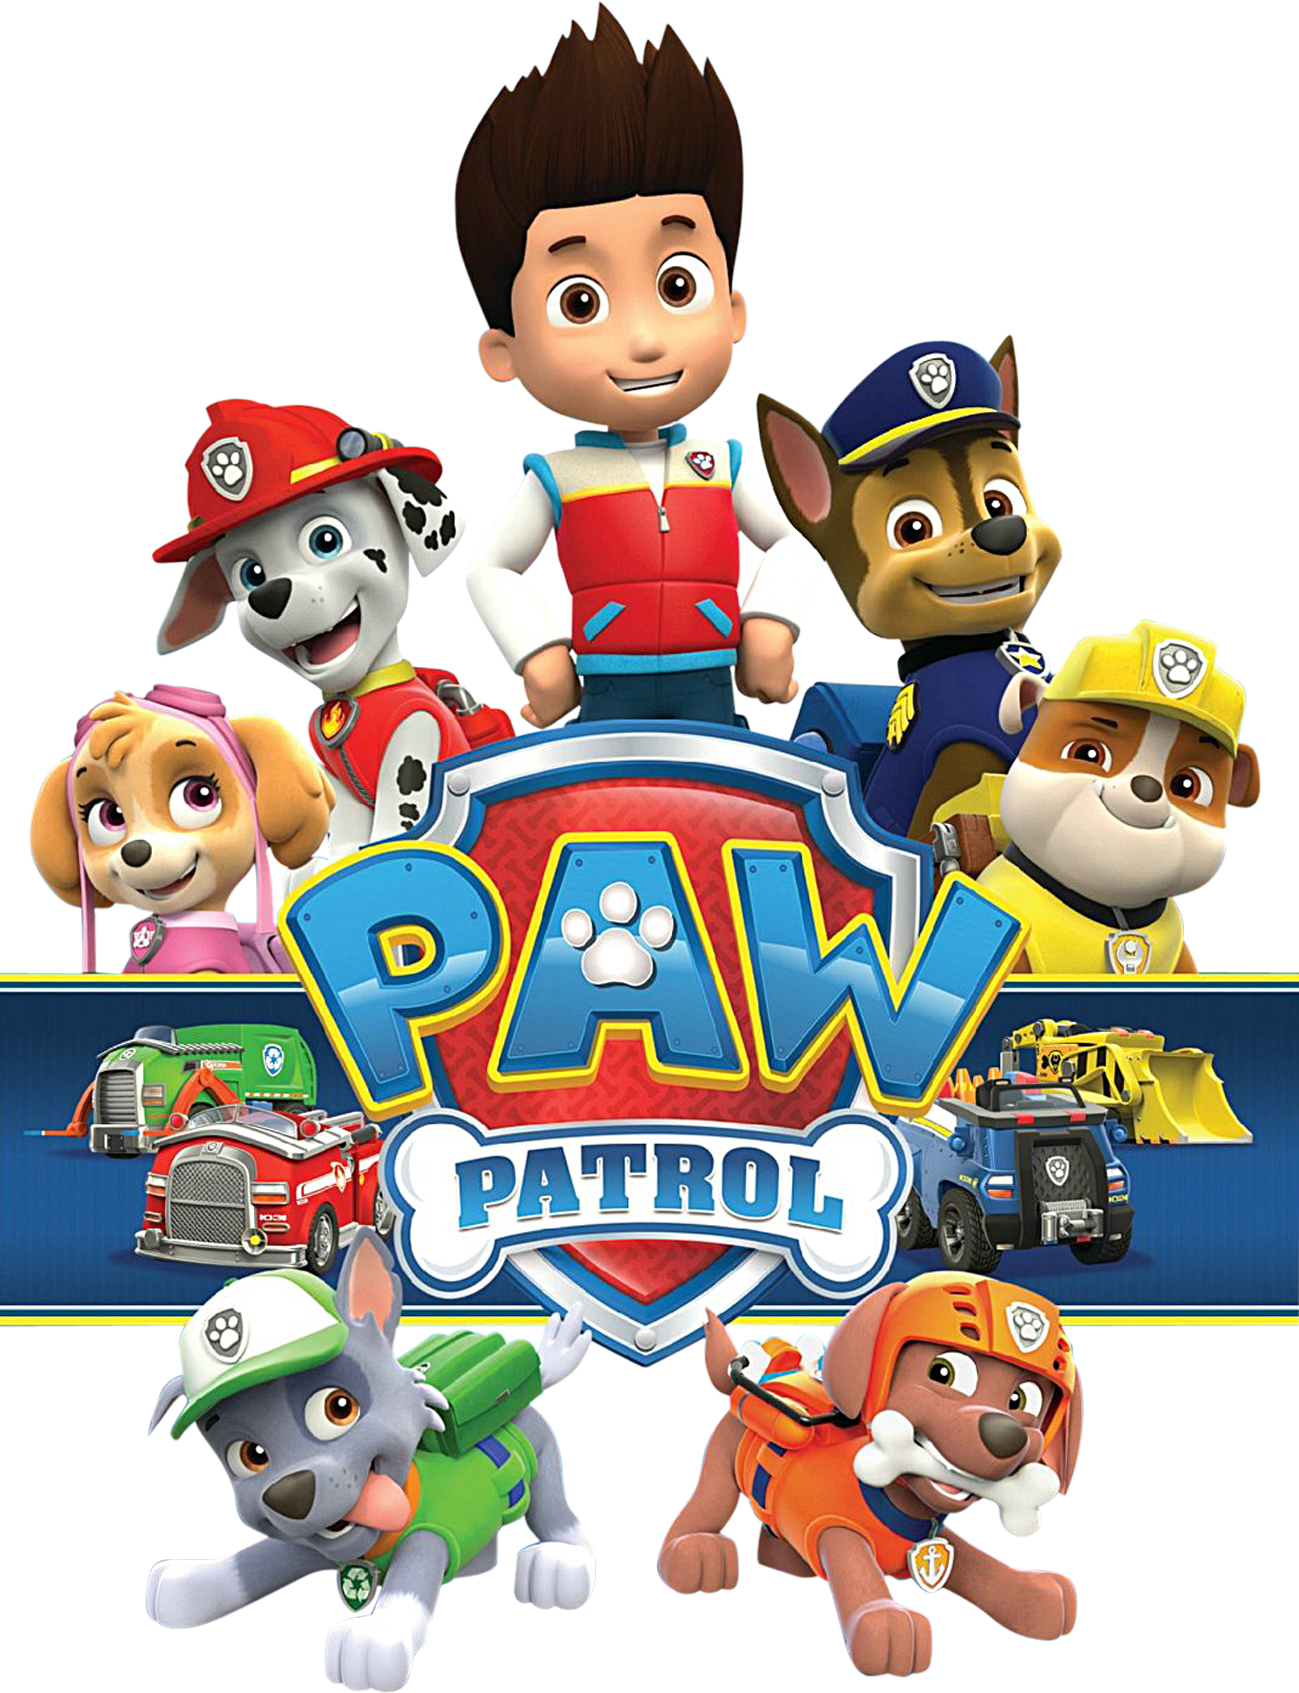 Paw Patrol Wallpaper | Paw Patrol Toys | Pinterest | Paw patrol, Paw patrol  party and Paw patrol birthday - Paw Patrol PNG HD